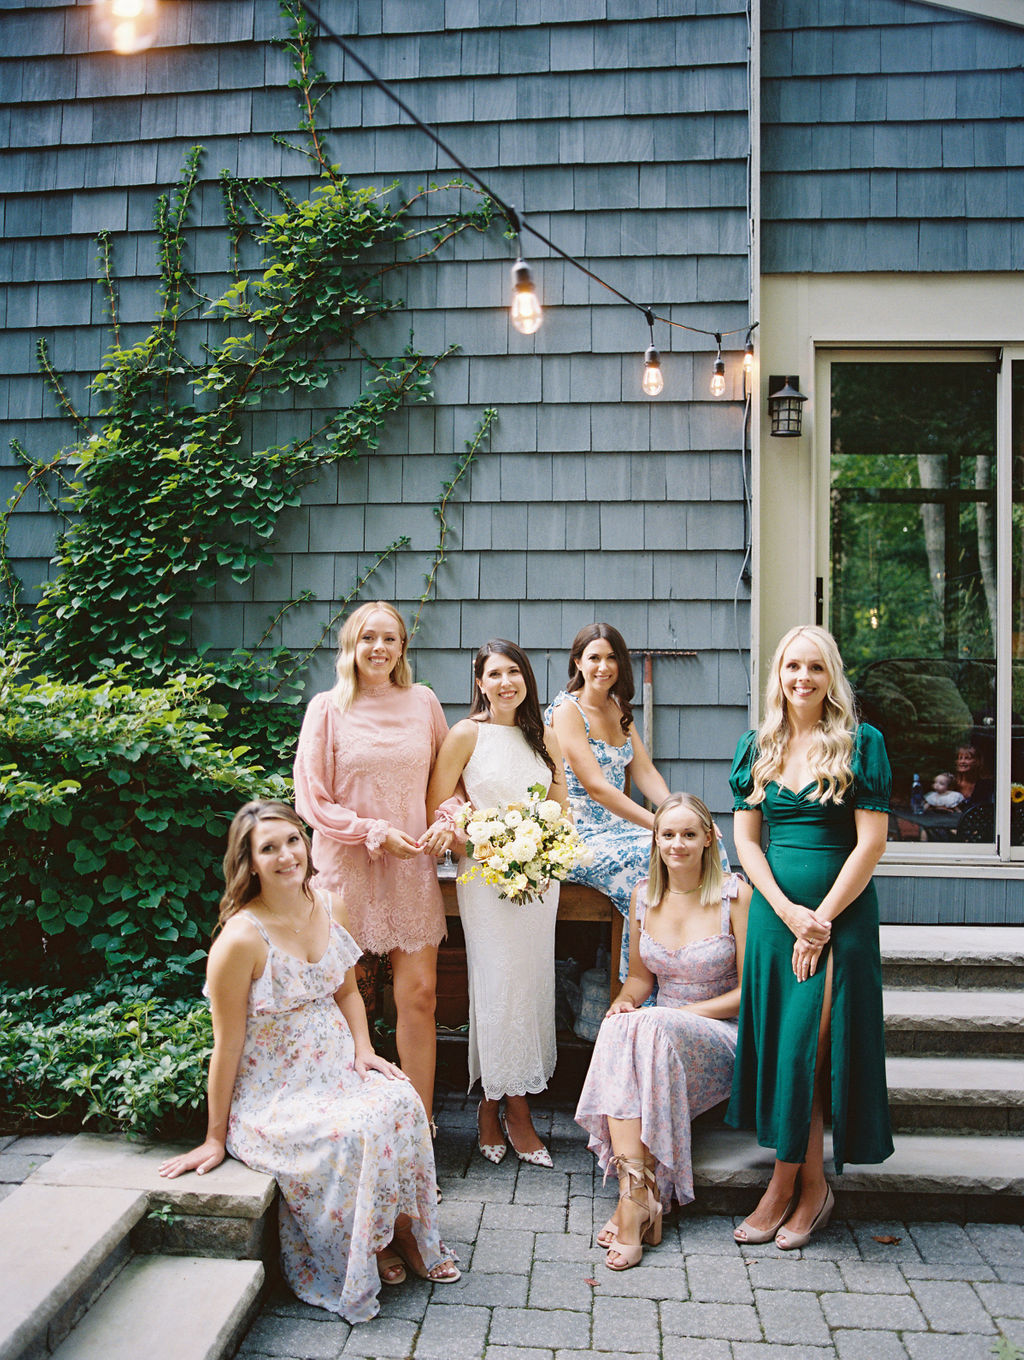 bride smiling with five bridesmaids wearing various style and colored dresses